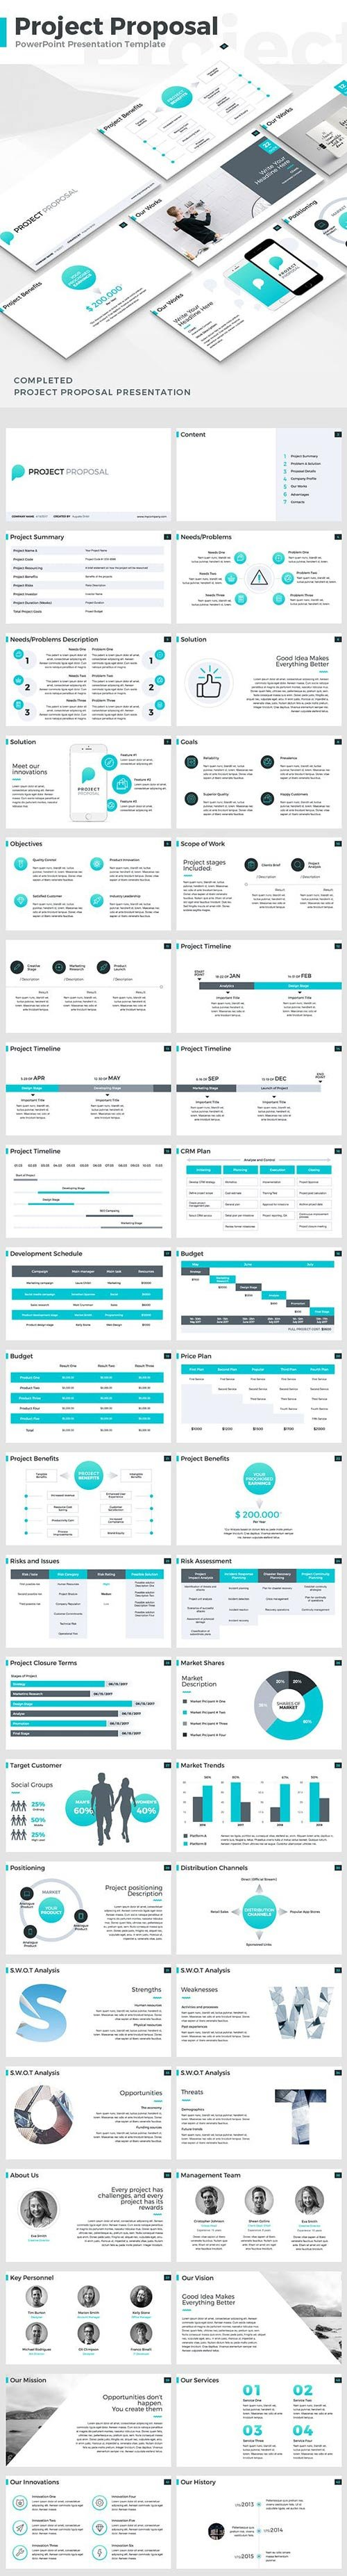 Graphicriver - Project Proposal - PowerPoint Template 19336606